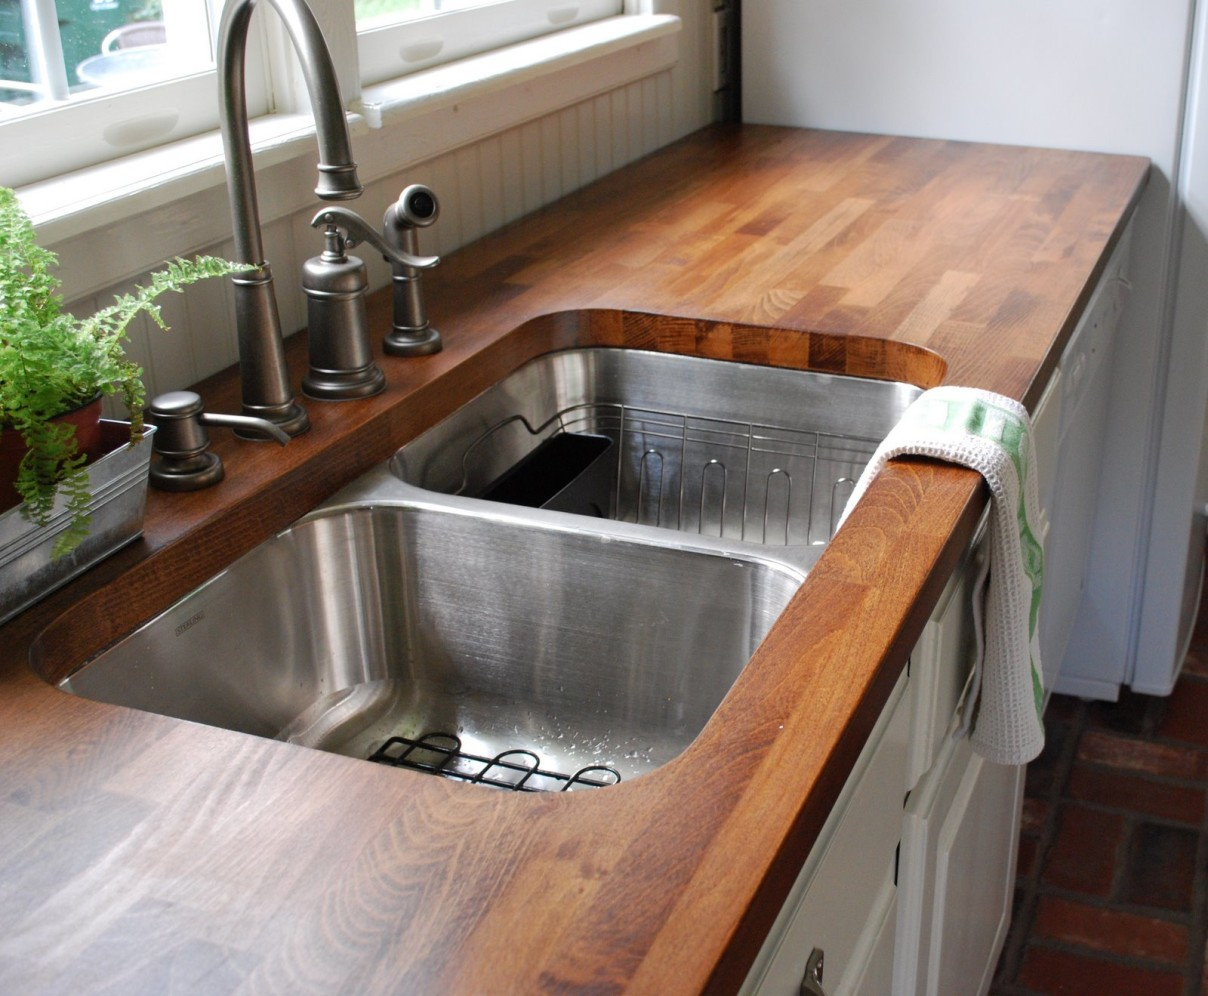 awesome-wooden-countertop-installed-at-contemporary-kitchen-equipped-with-kitchen-sink-shapes-and-curved-faucet-made-of-metal-near-with-chic-vase-1208x996